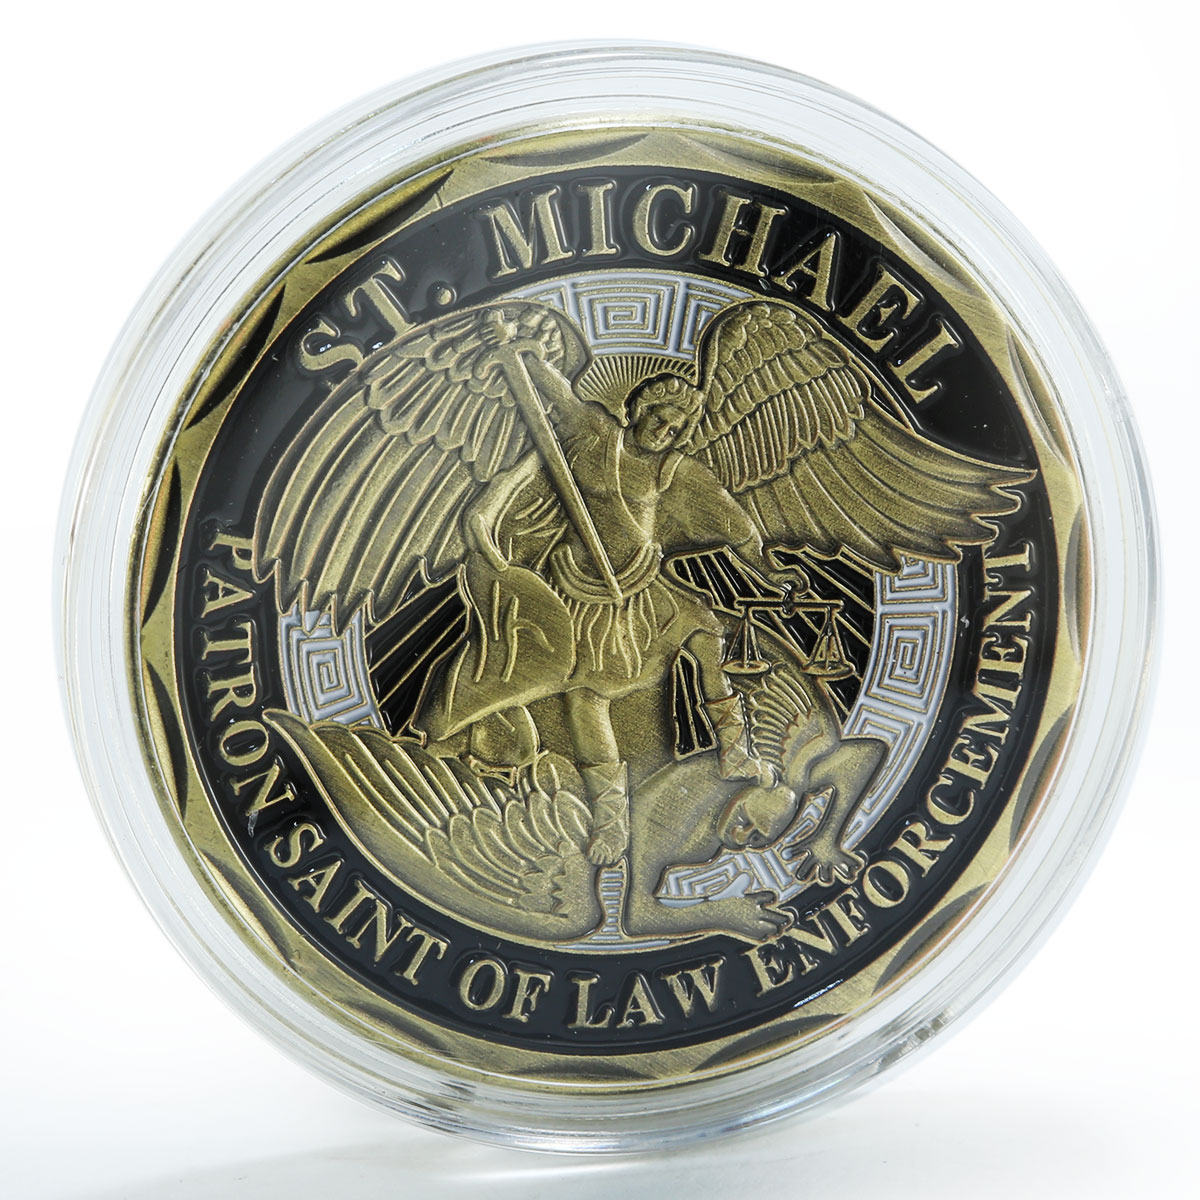 Archangel Michael the Holy Order of Law Police Officer's token